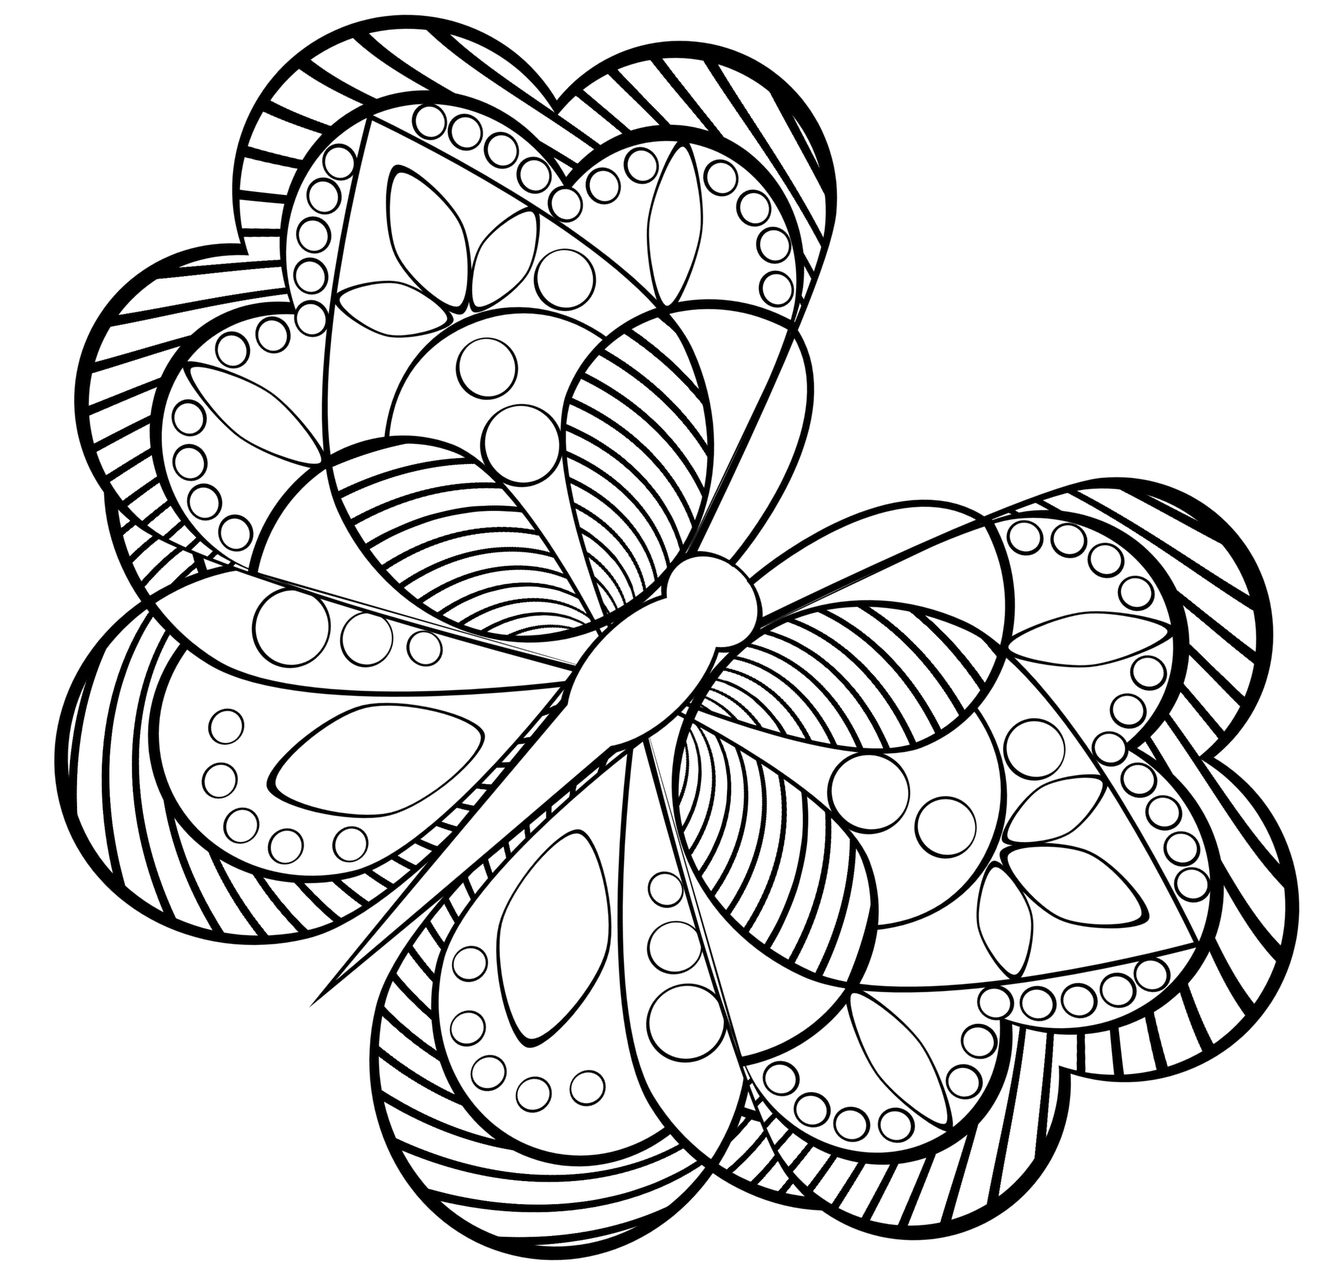 free easy coloring pages easy coloring pages to download and print for free free coloring pages easy